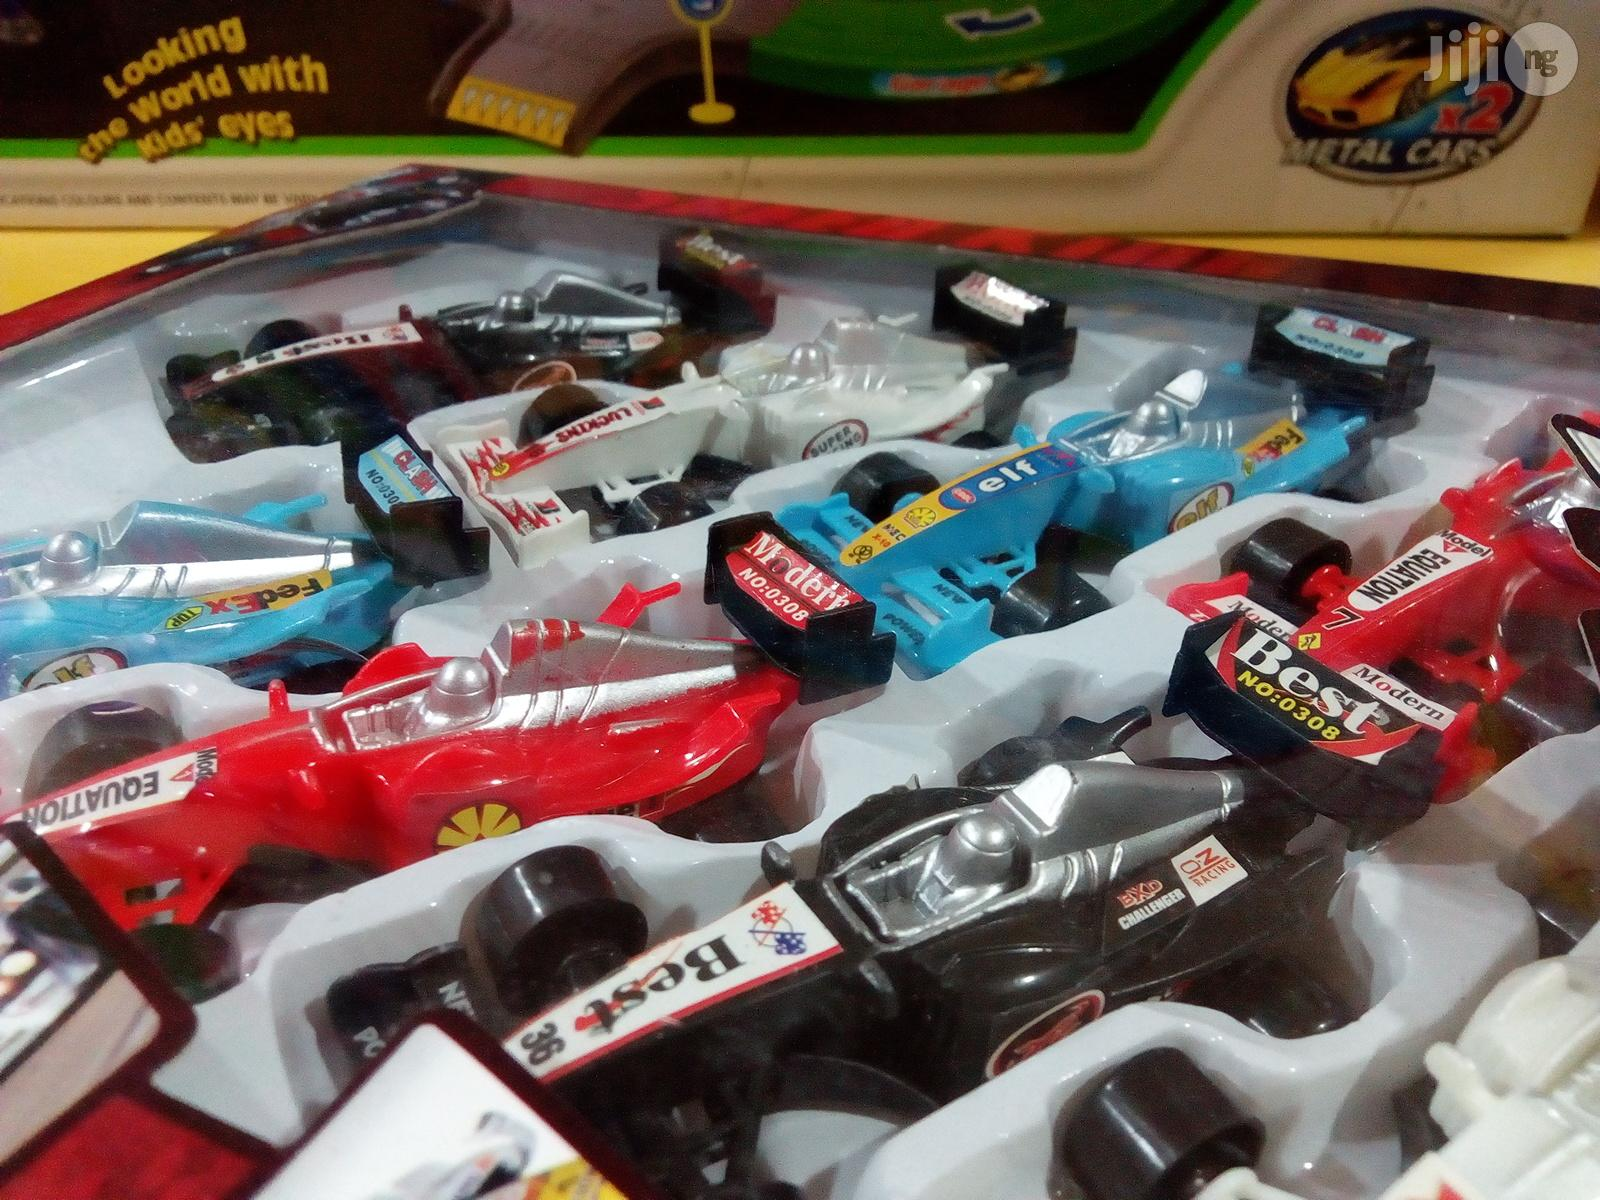 F1 Racing Cars In Yaba Toys Exorient Limited Jiji Ng